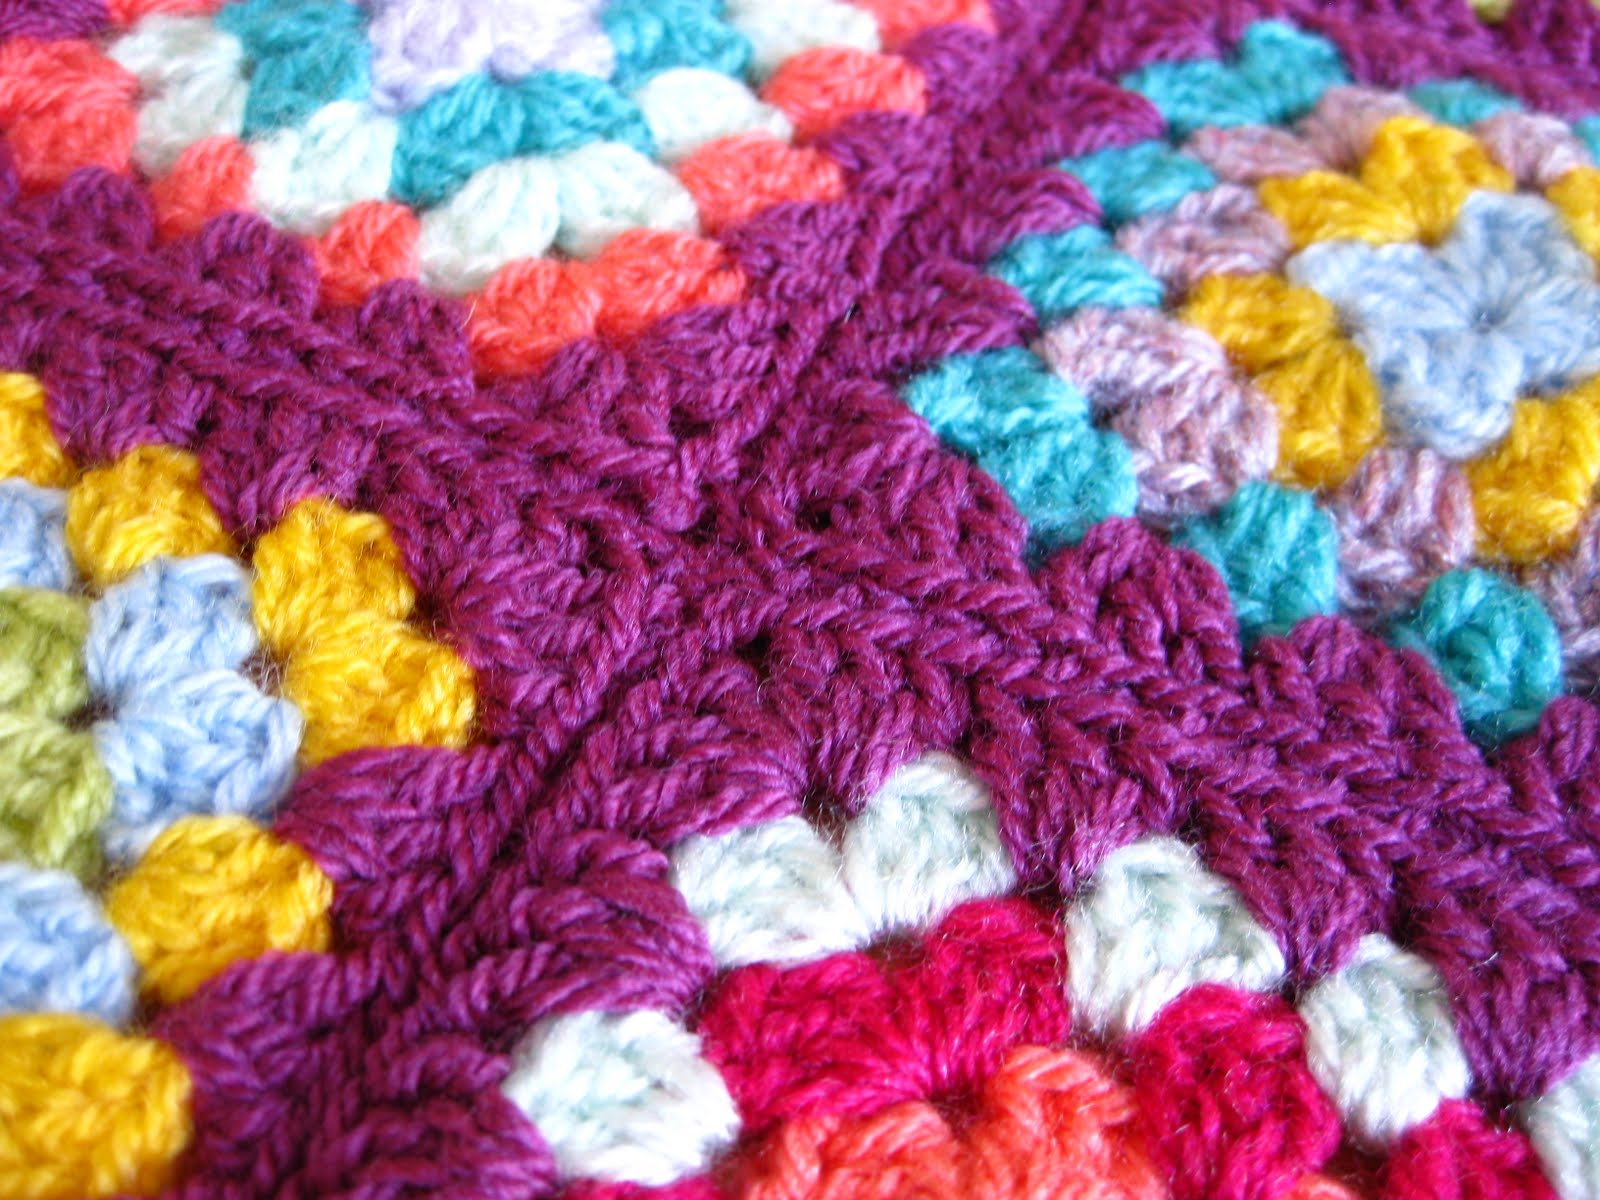 Crochet Stitches To Join Granny Squares : you lock the final stitch in the same way you did the first .